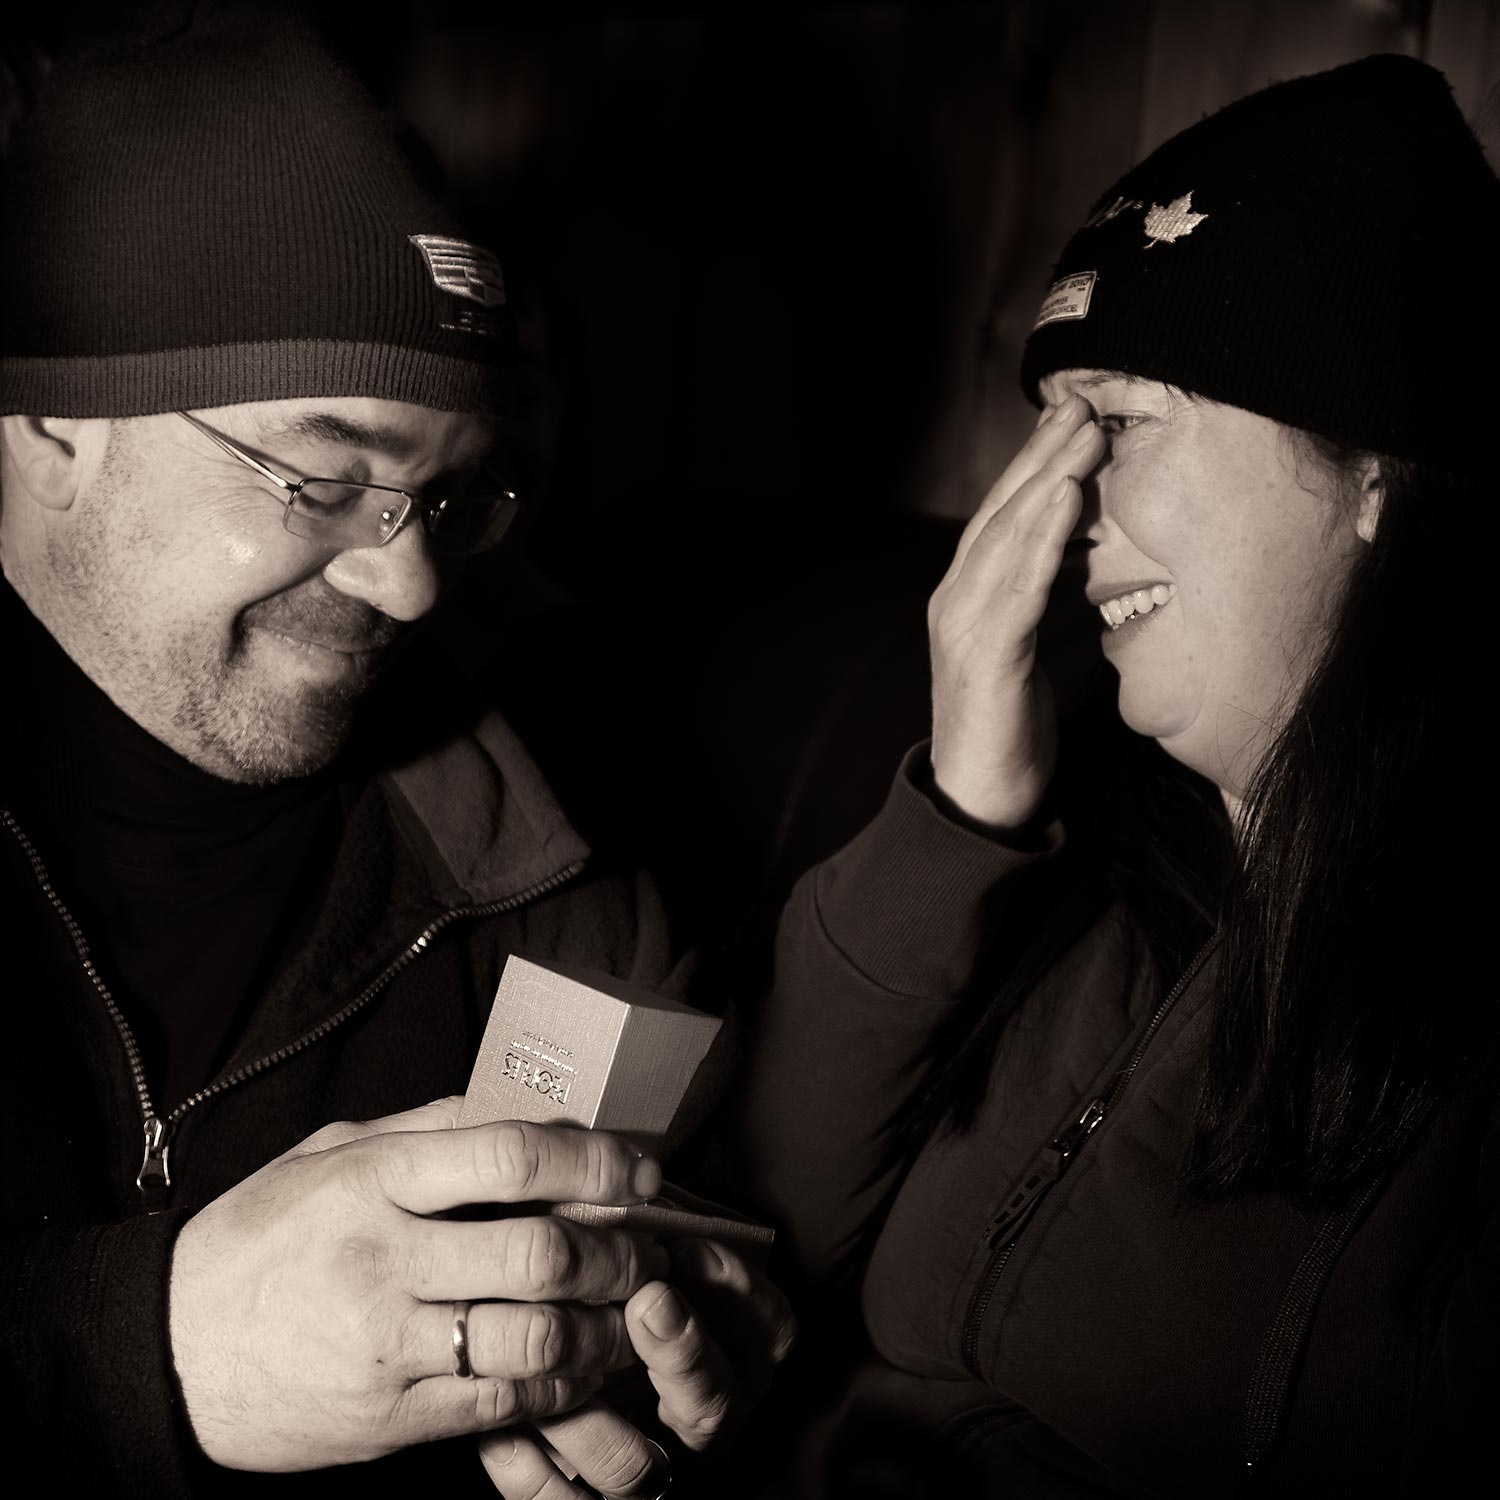 Man offering ring, proposing woman to marry him.